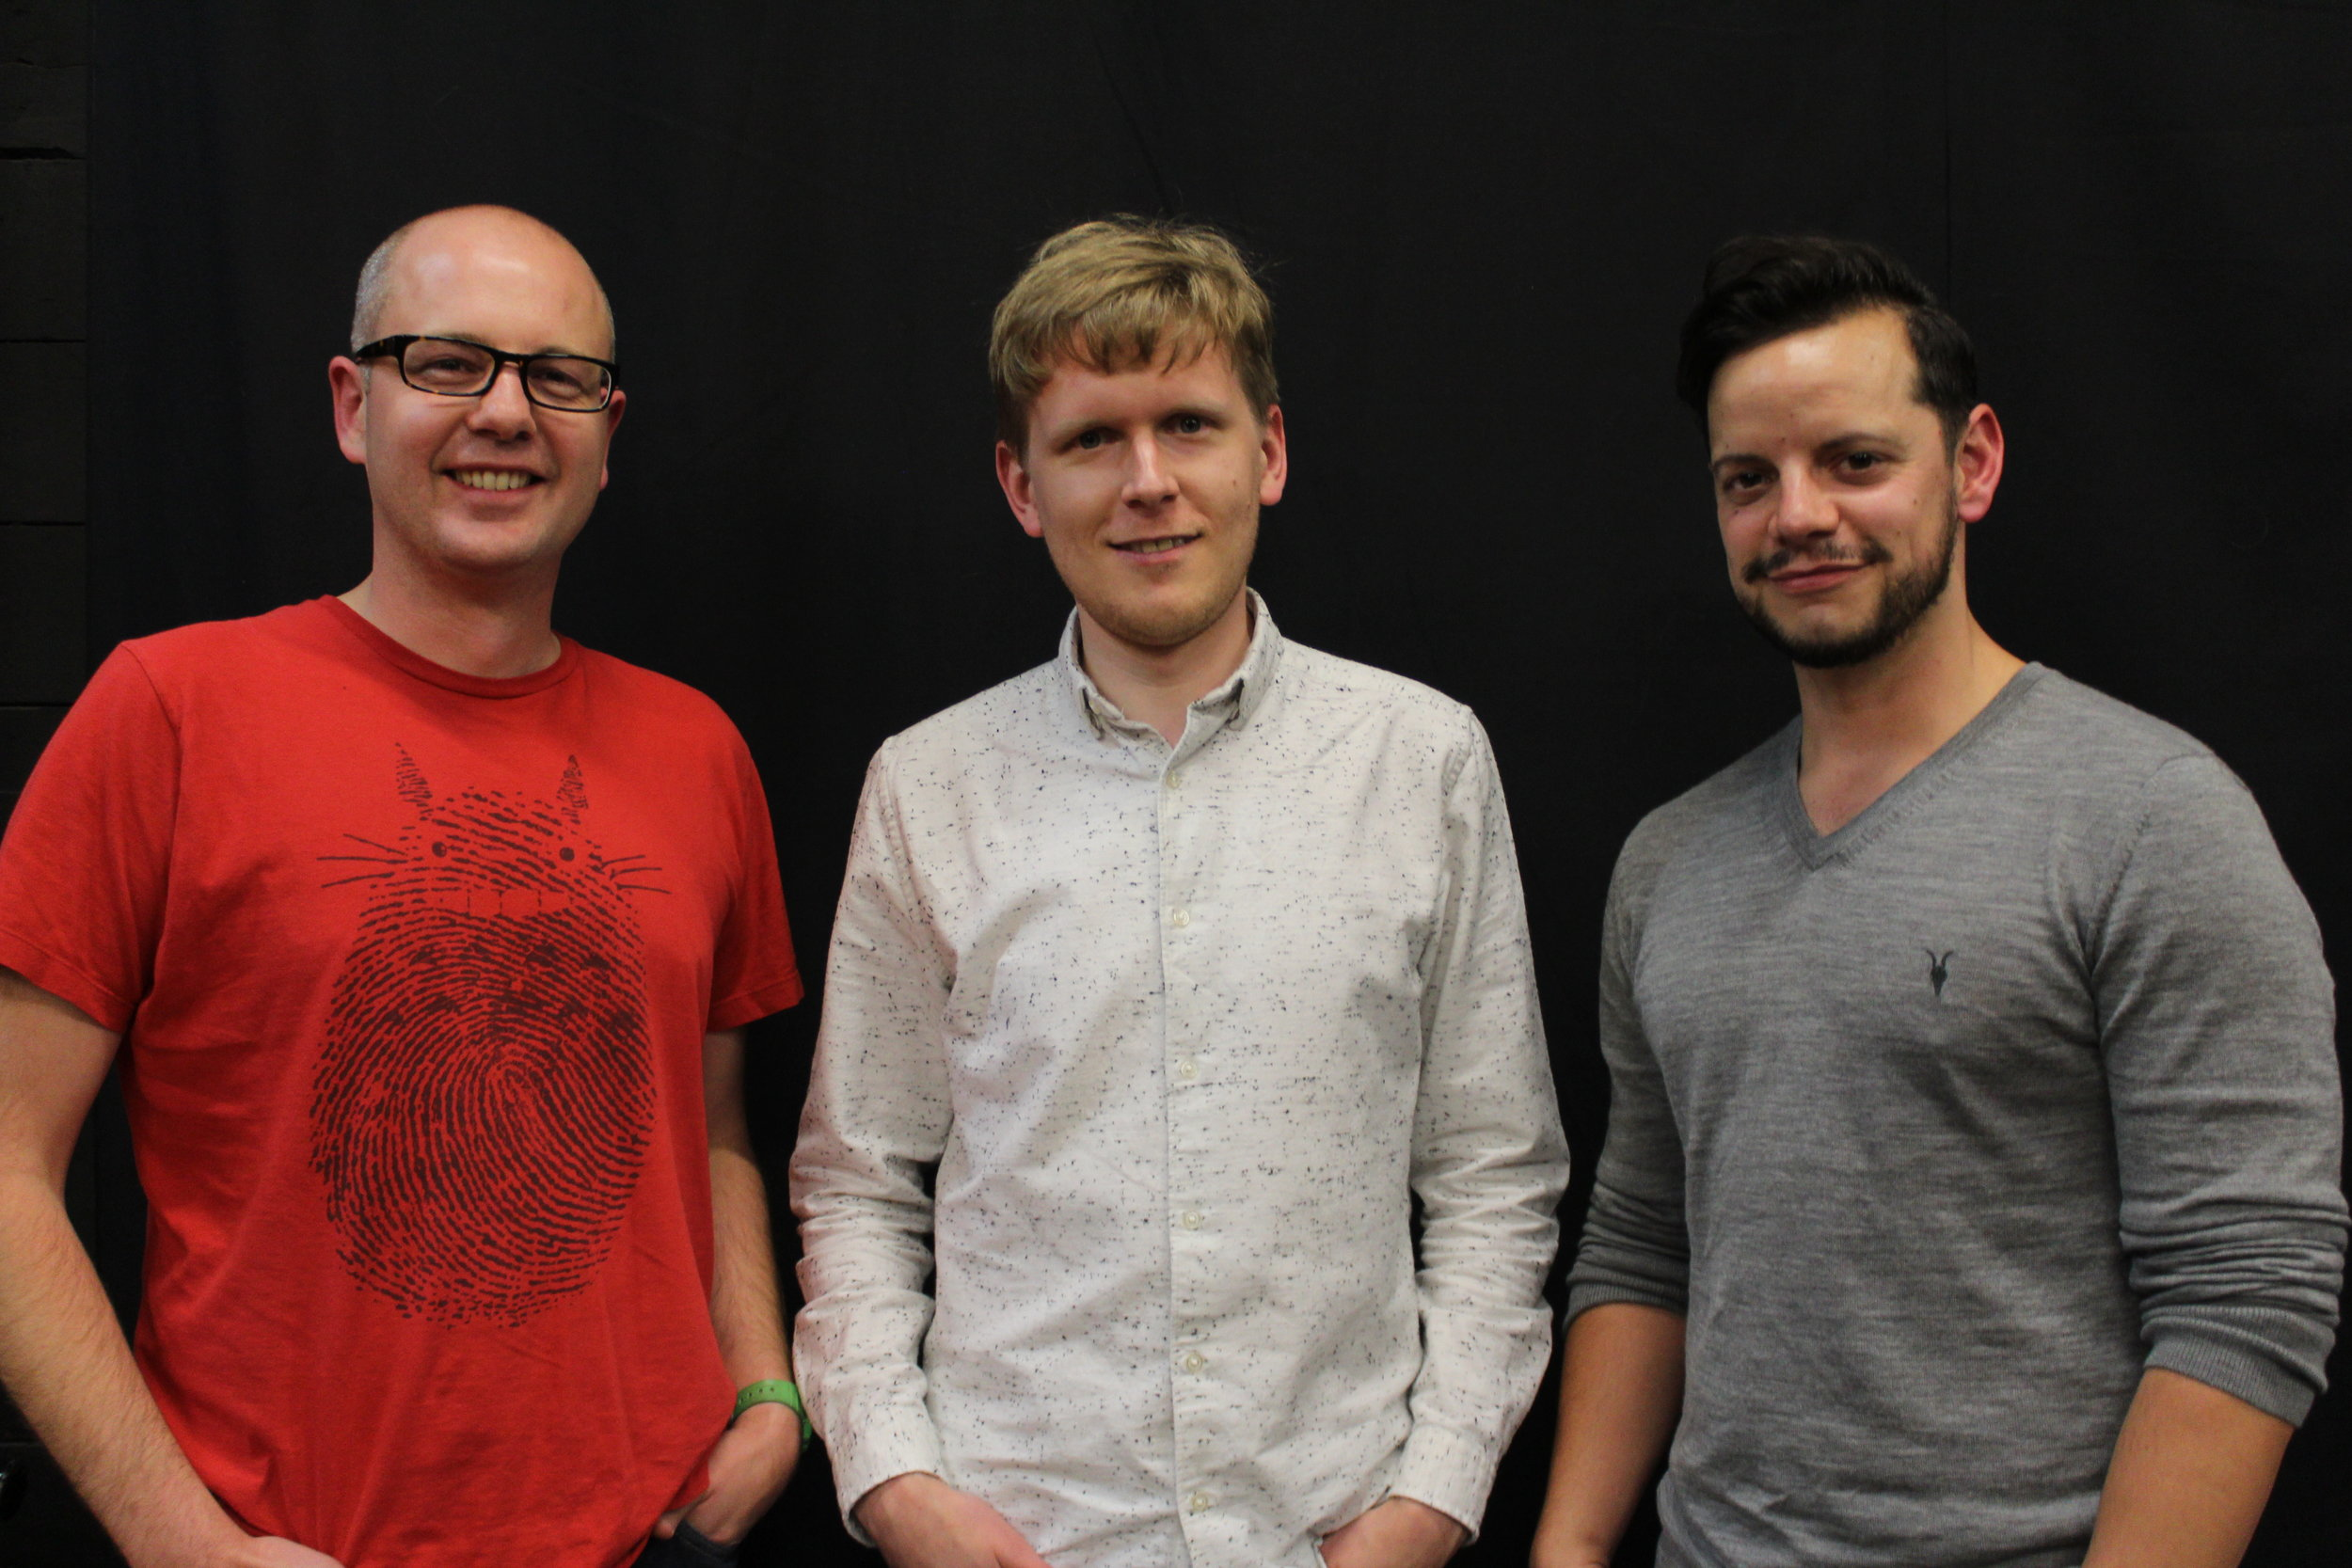 Pawan Mather (sound, camera), Andrew River (writer, director, editor, producer), James Podmore (director, camera, Ryan)